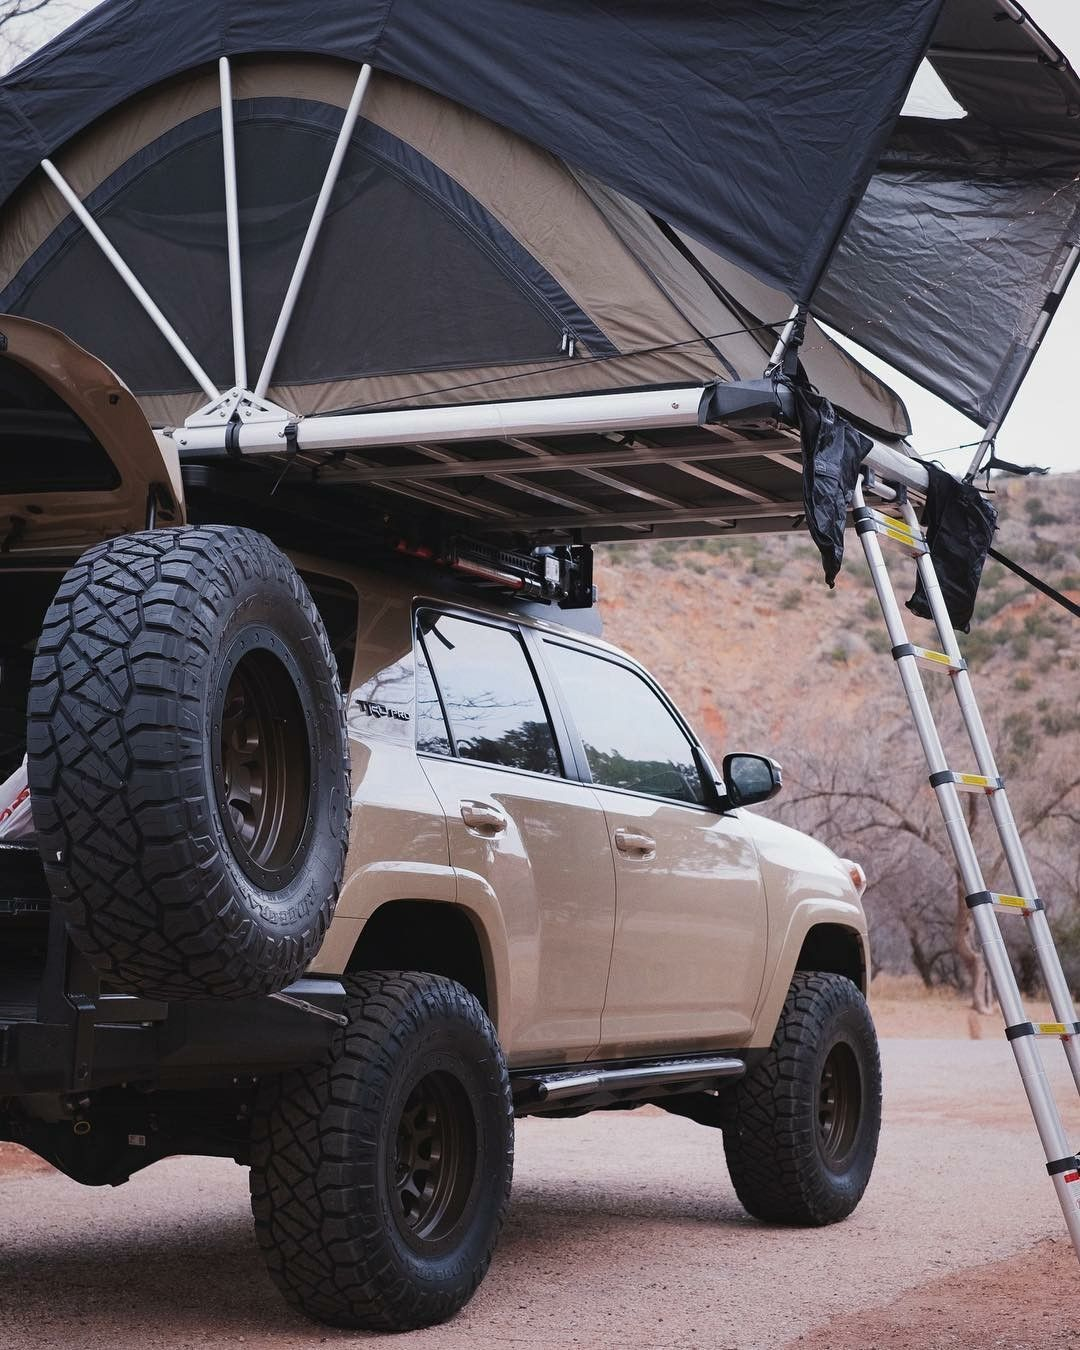 Save by Hermie Overland vehicles, Toyota fj cruiser